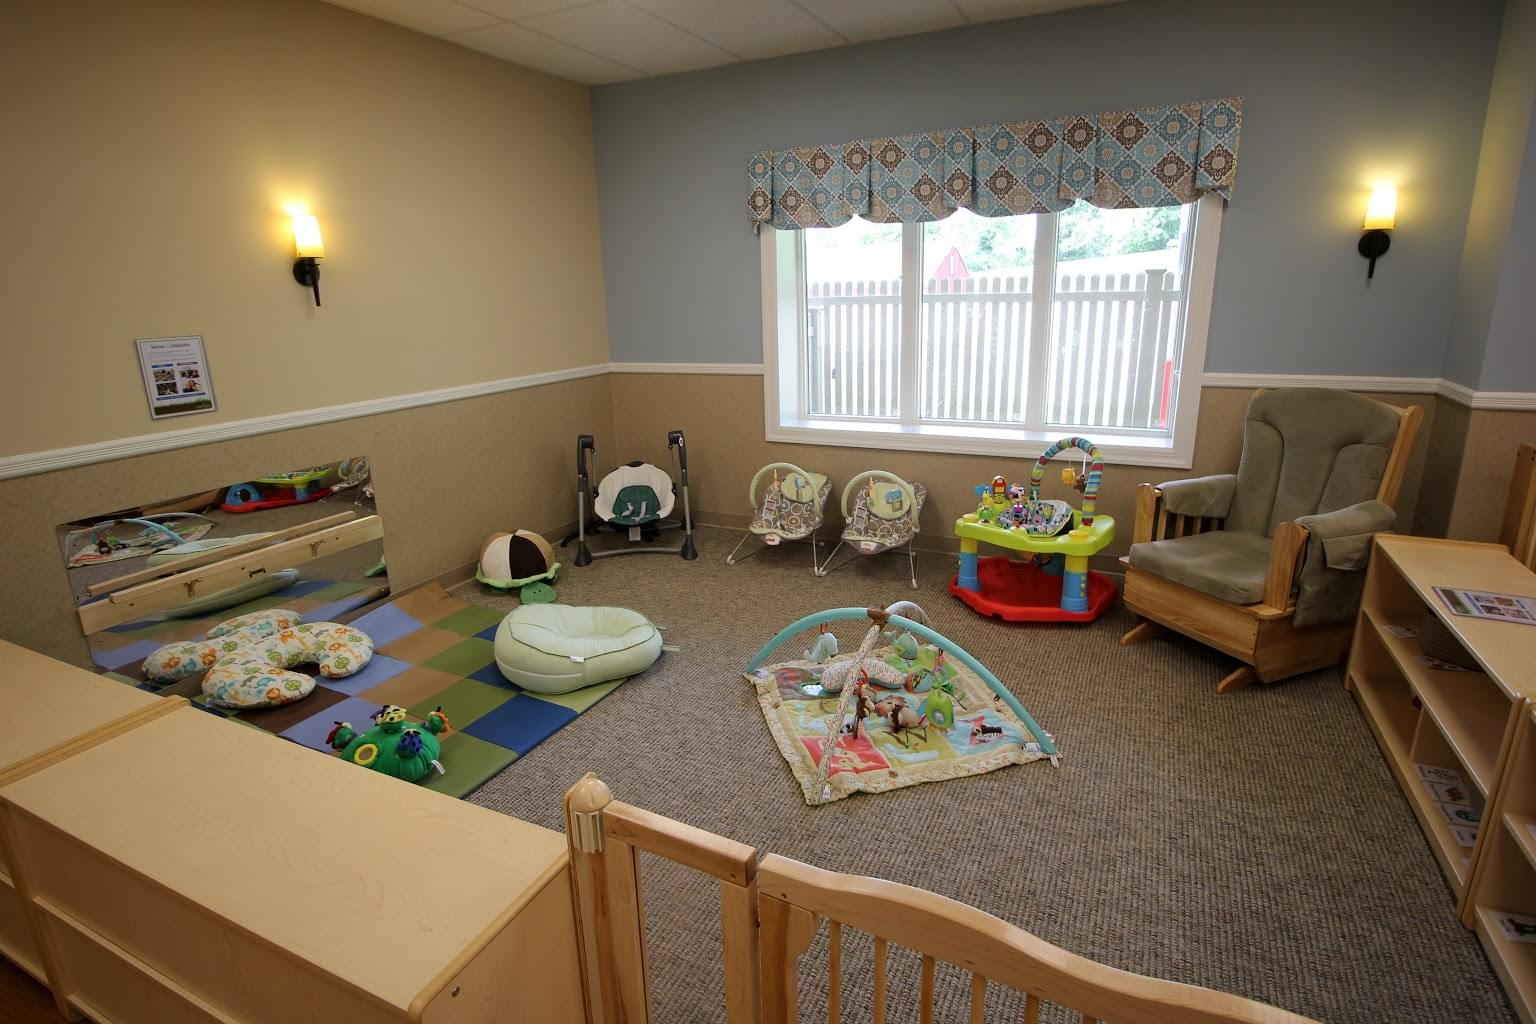 Lightbridge Academy Daycare in Fanwood, NJ infant playpen